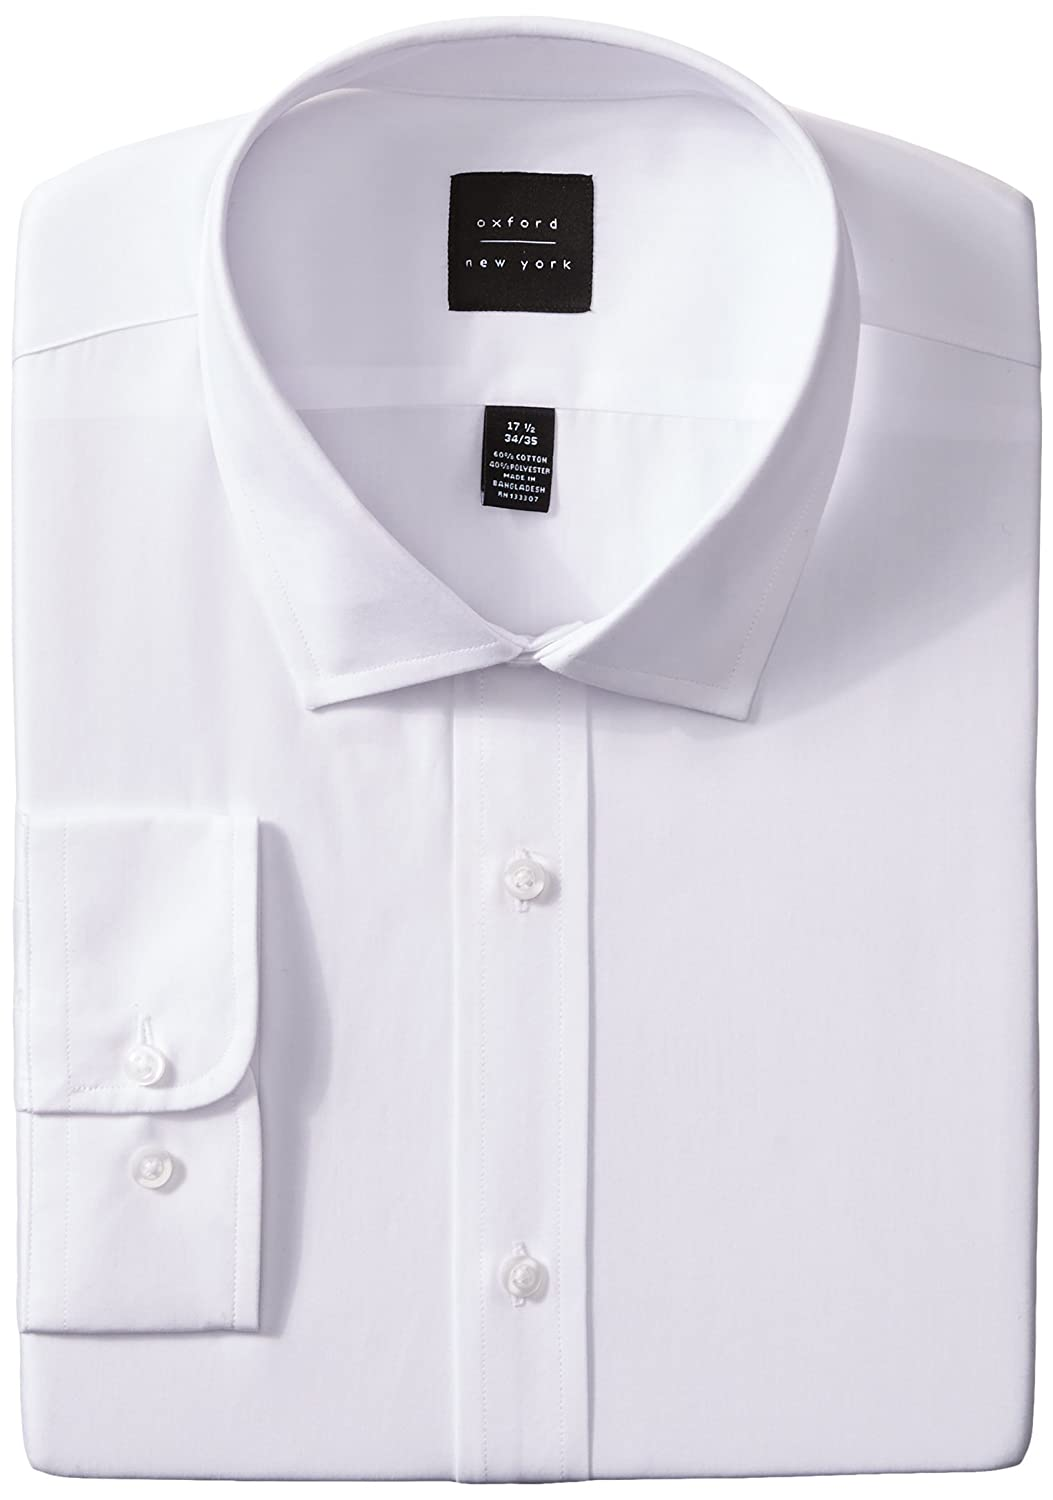 Oxford Ny Mens Solid Spread Collar At Amazon Mens Clothing Store